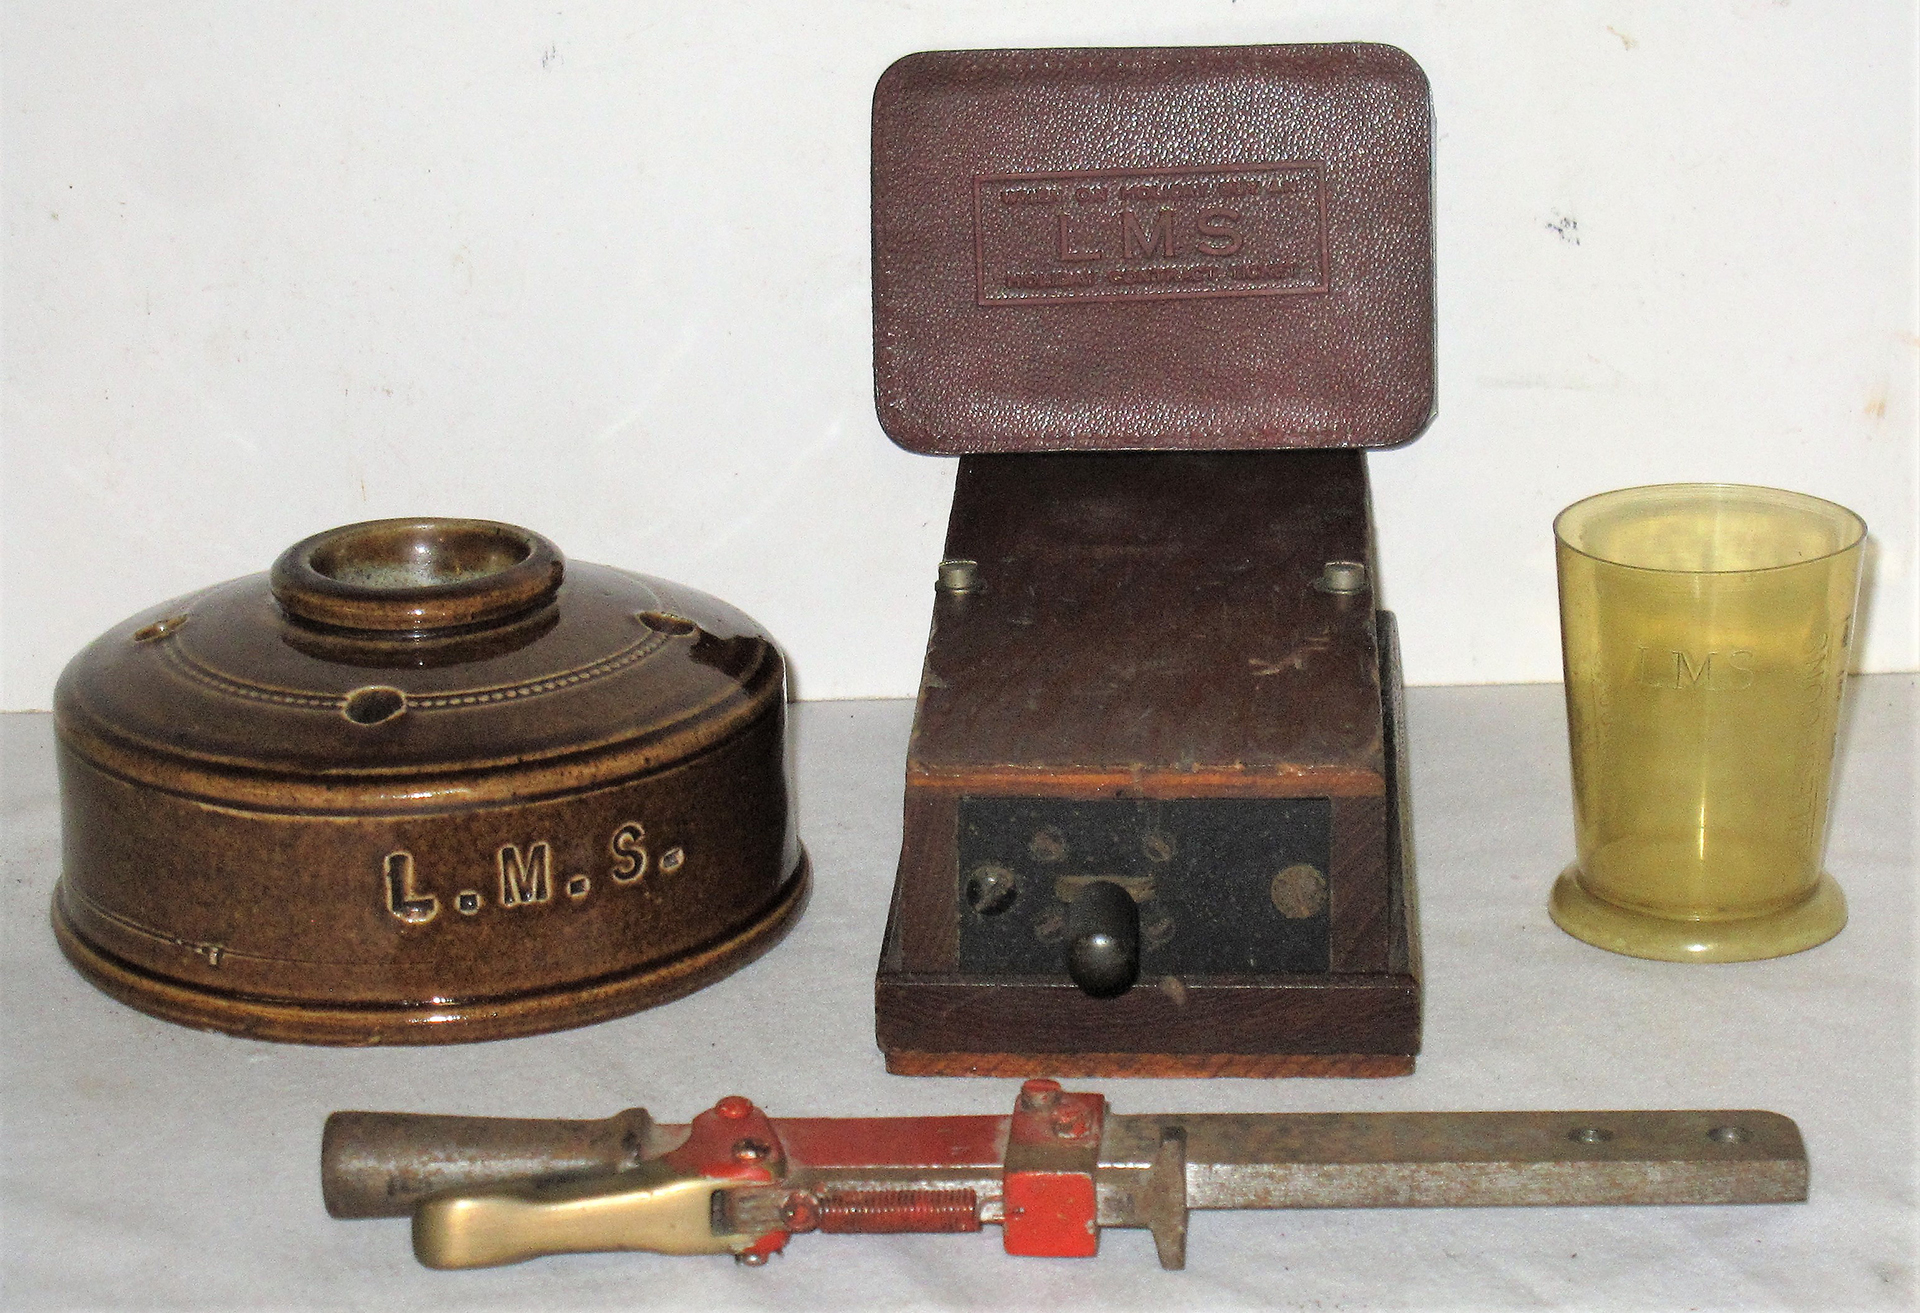 A Lot containing various railway items to include an LMS land mine ink well. LMS leather address